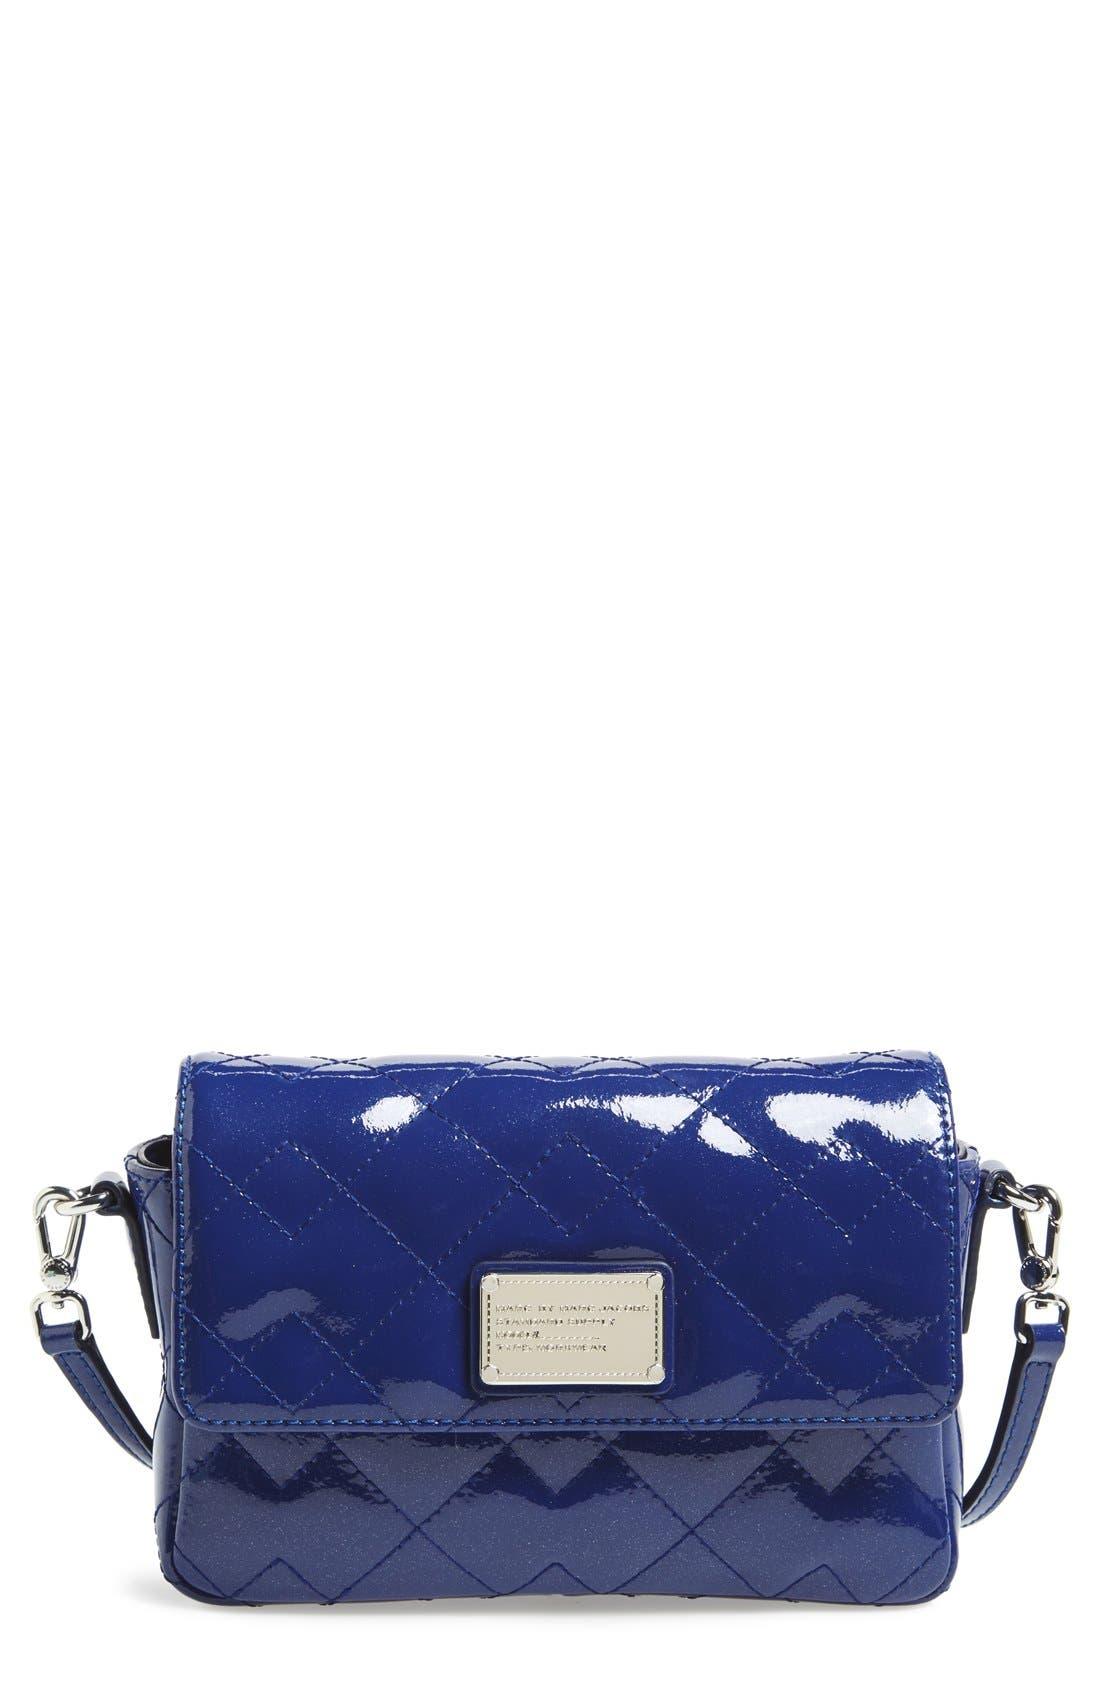 Main Image - MARC BY MARC JACOBS 'Nifty Gifty - Julie' Patent Leather Crossbody Bag